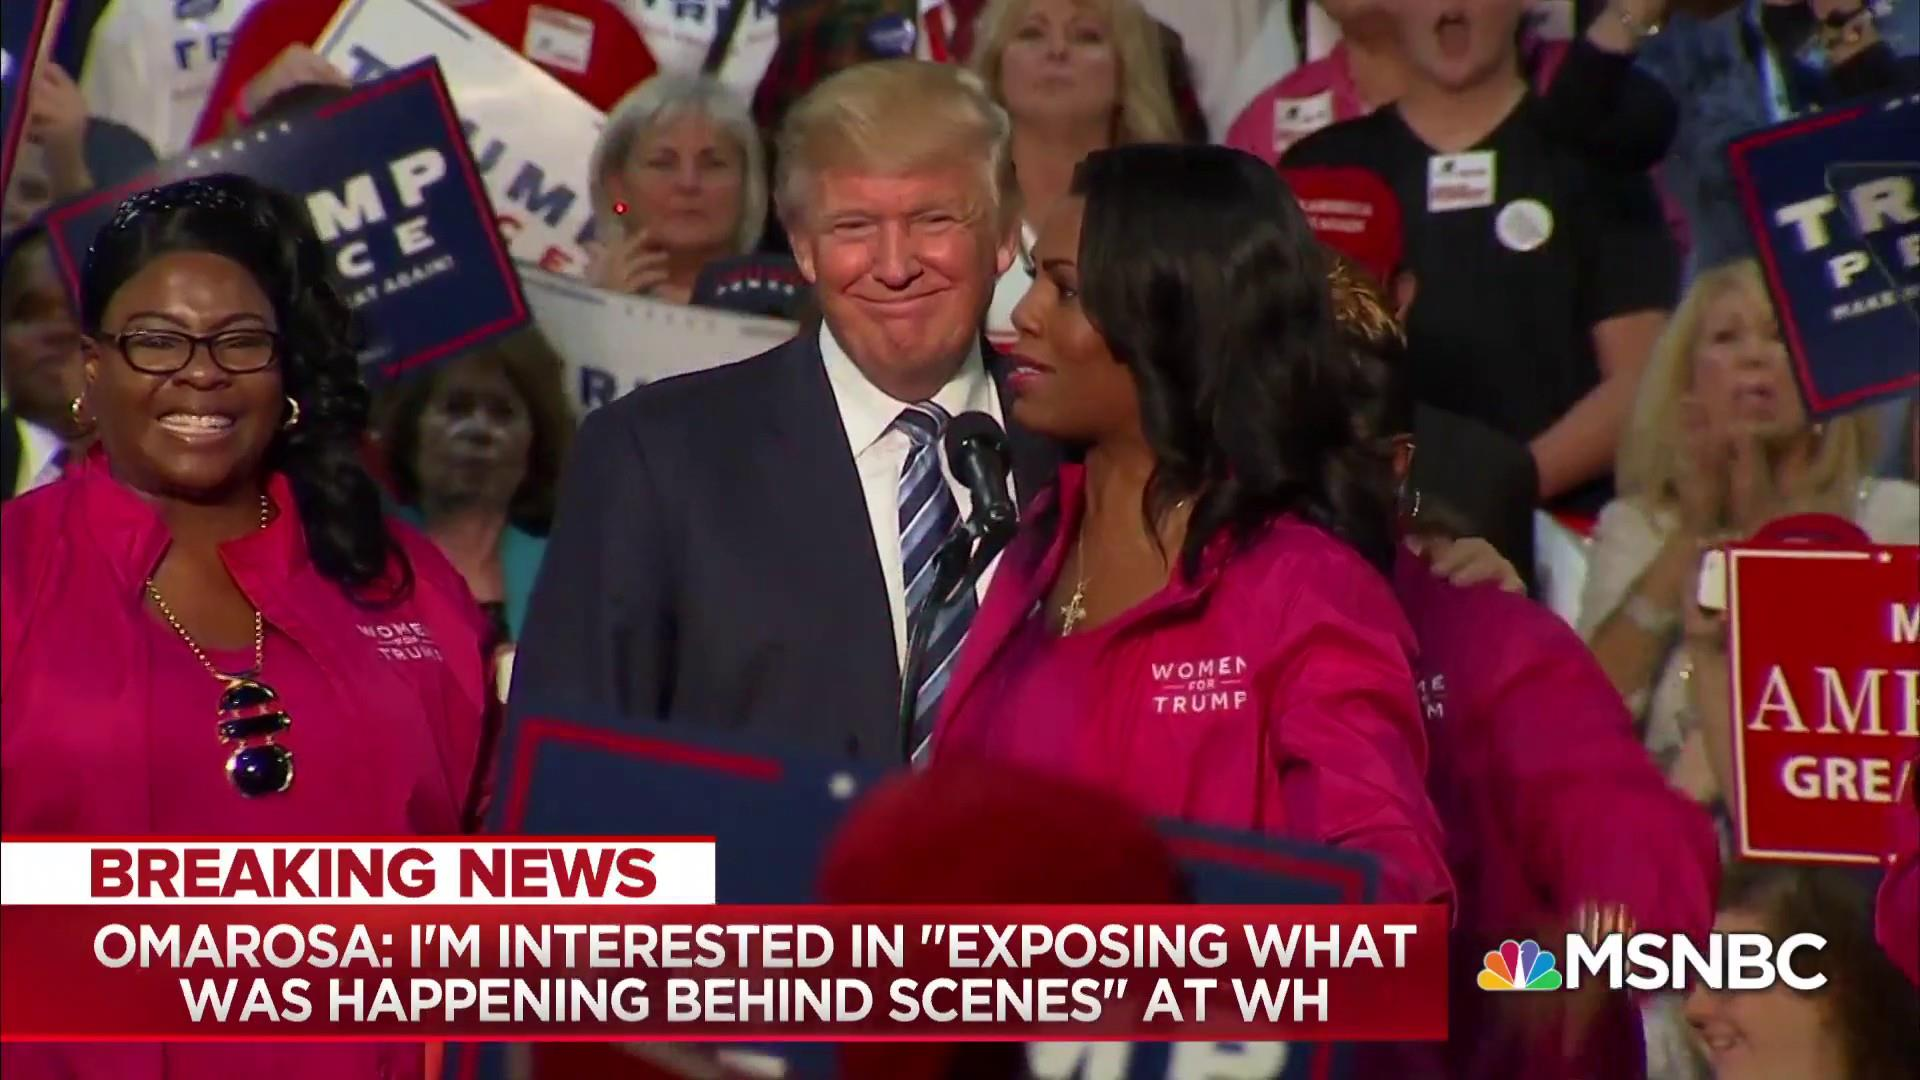 Why Omarosa's claims matter